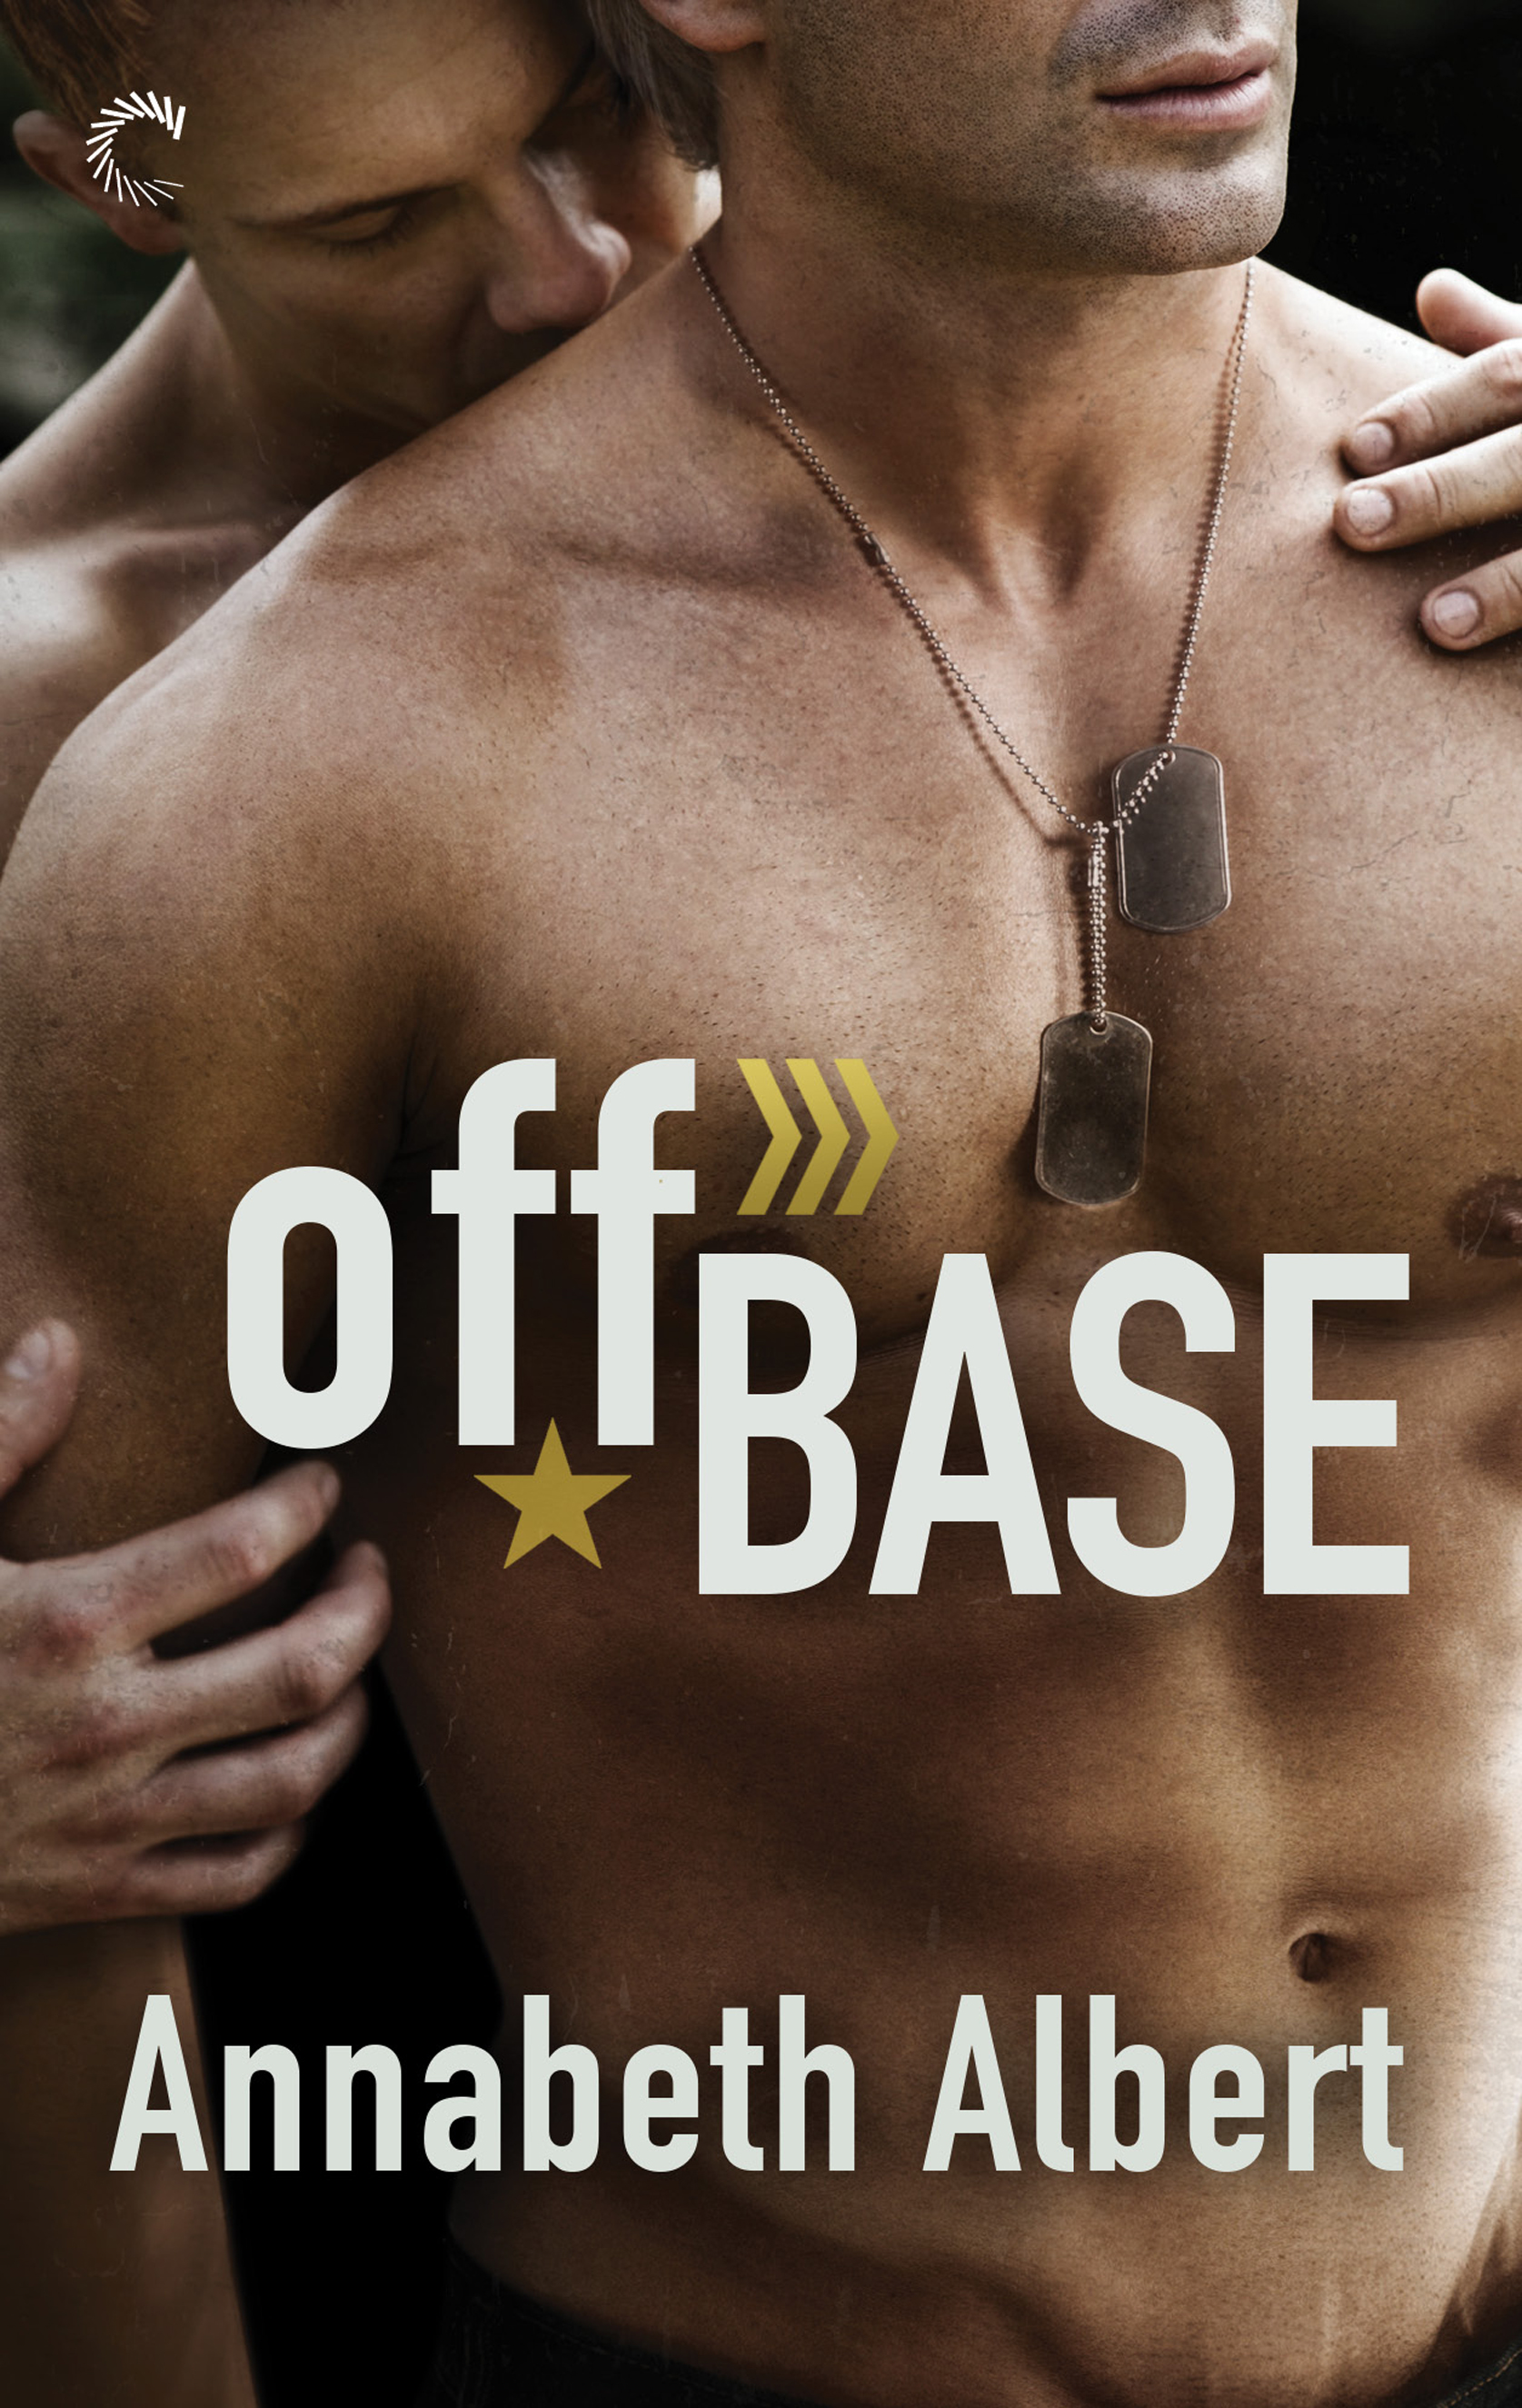 Guest Post and Giveaway: Off Base by Annabeth Albert